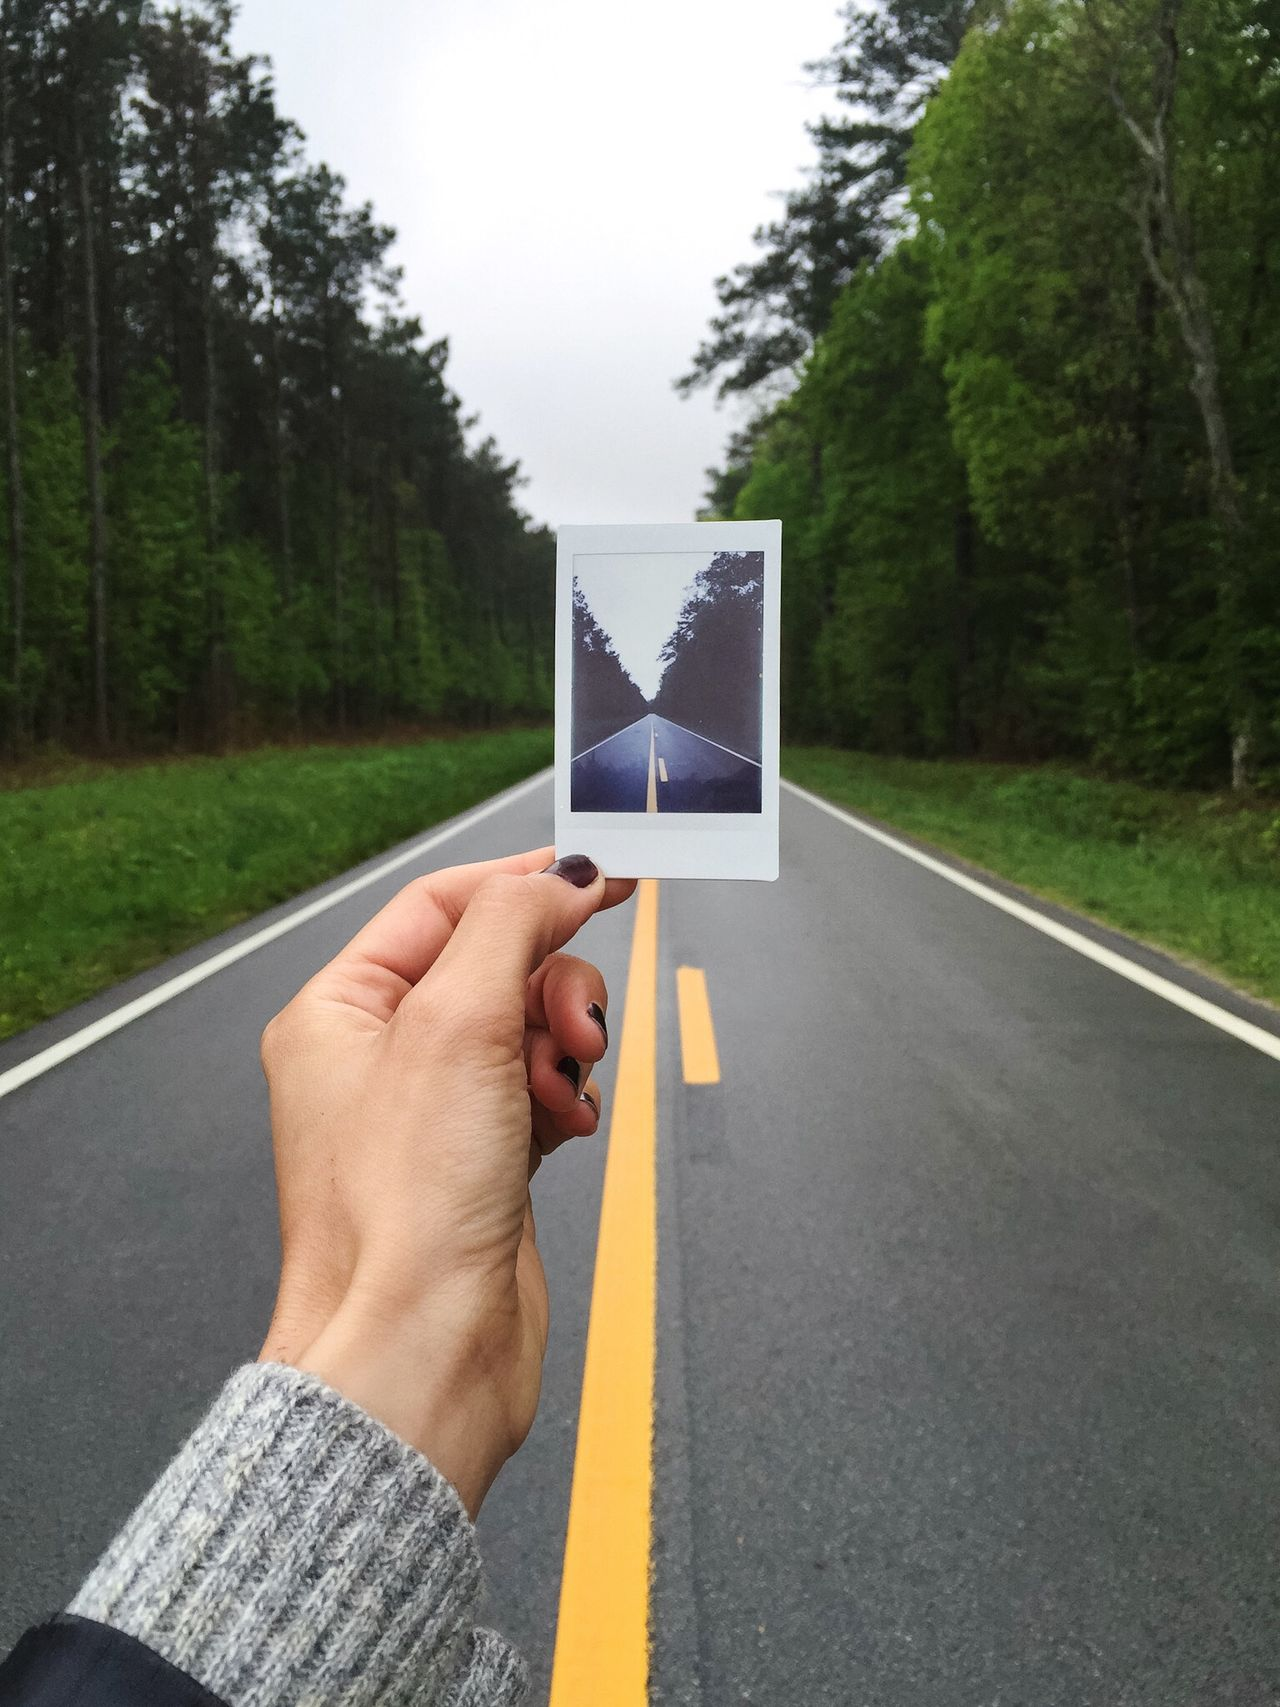 The Great Outdoors - 2015 EyeEm Awards EyeEm Best Shots Learn & Shoot: Layering Polaroid Road Ontheroad Trees Nature On Your Doorstep Check This Out Hanging Out Market Bestsellers May 2016 Bestsellers